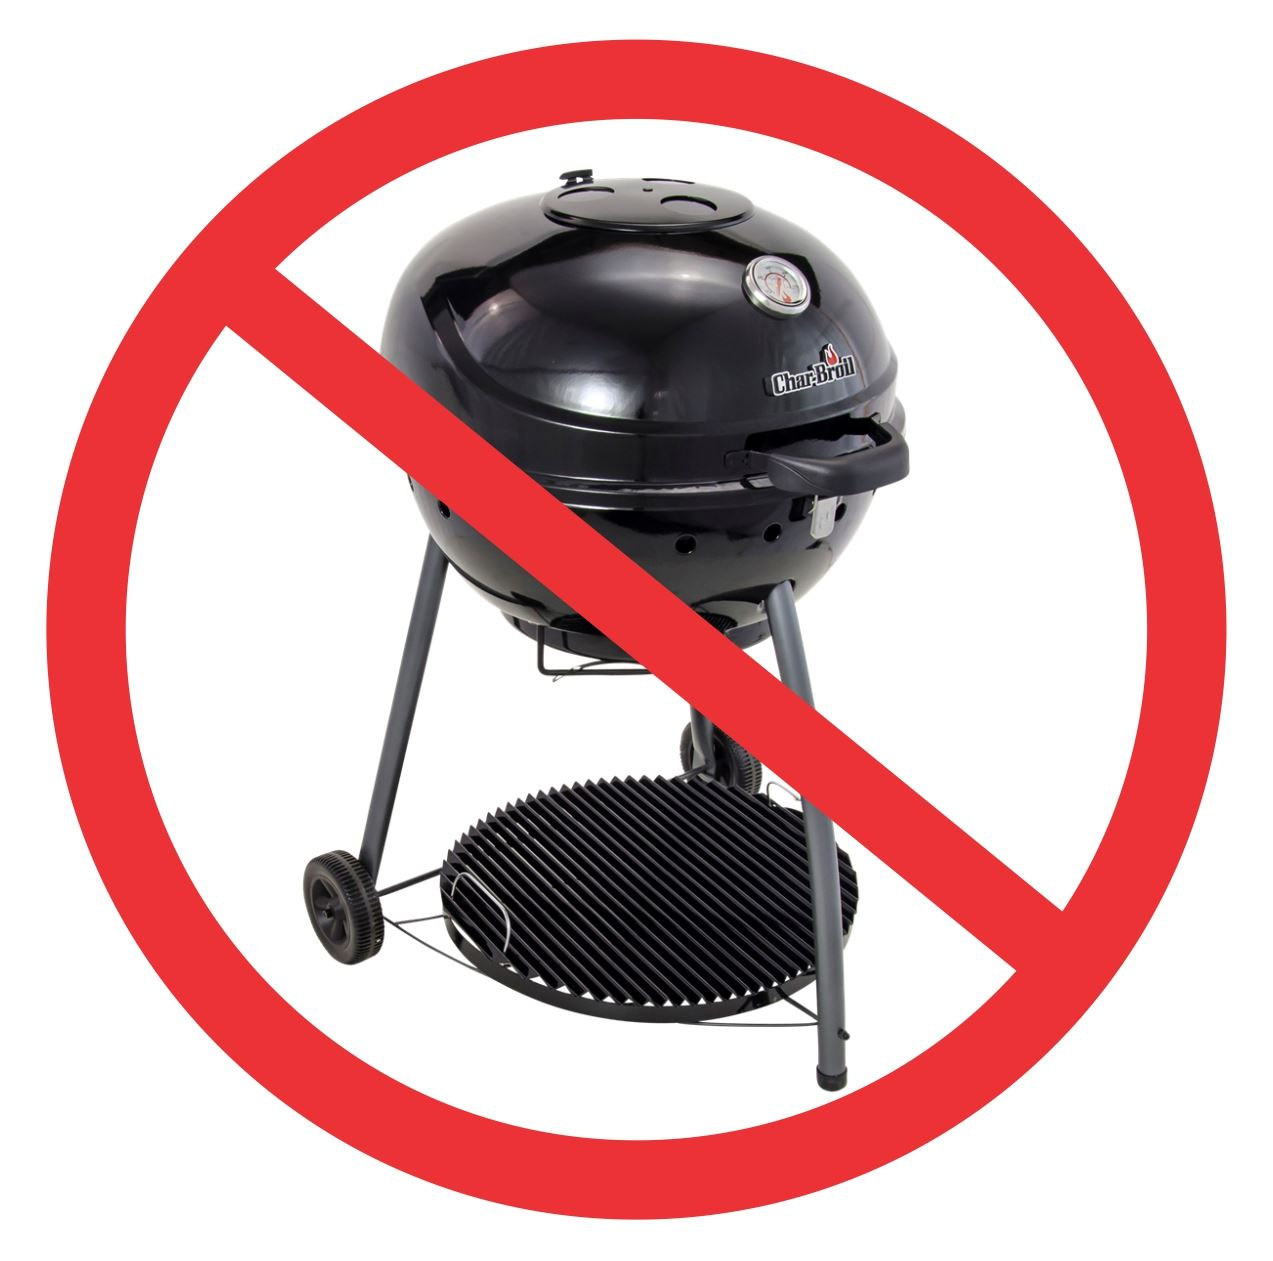 Charcoal grills restricted within all Sylvan Lake Town Parks